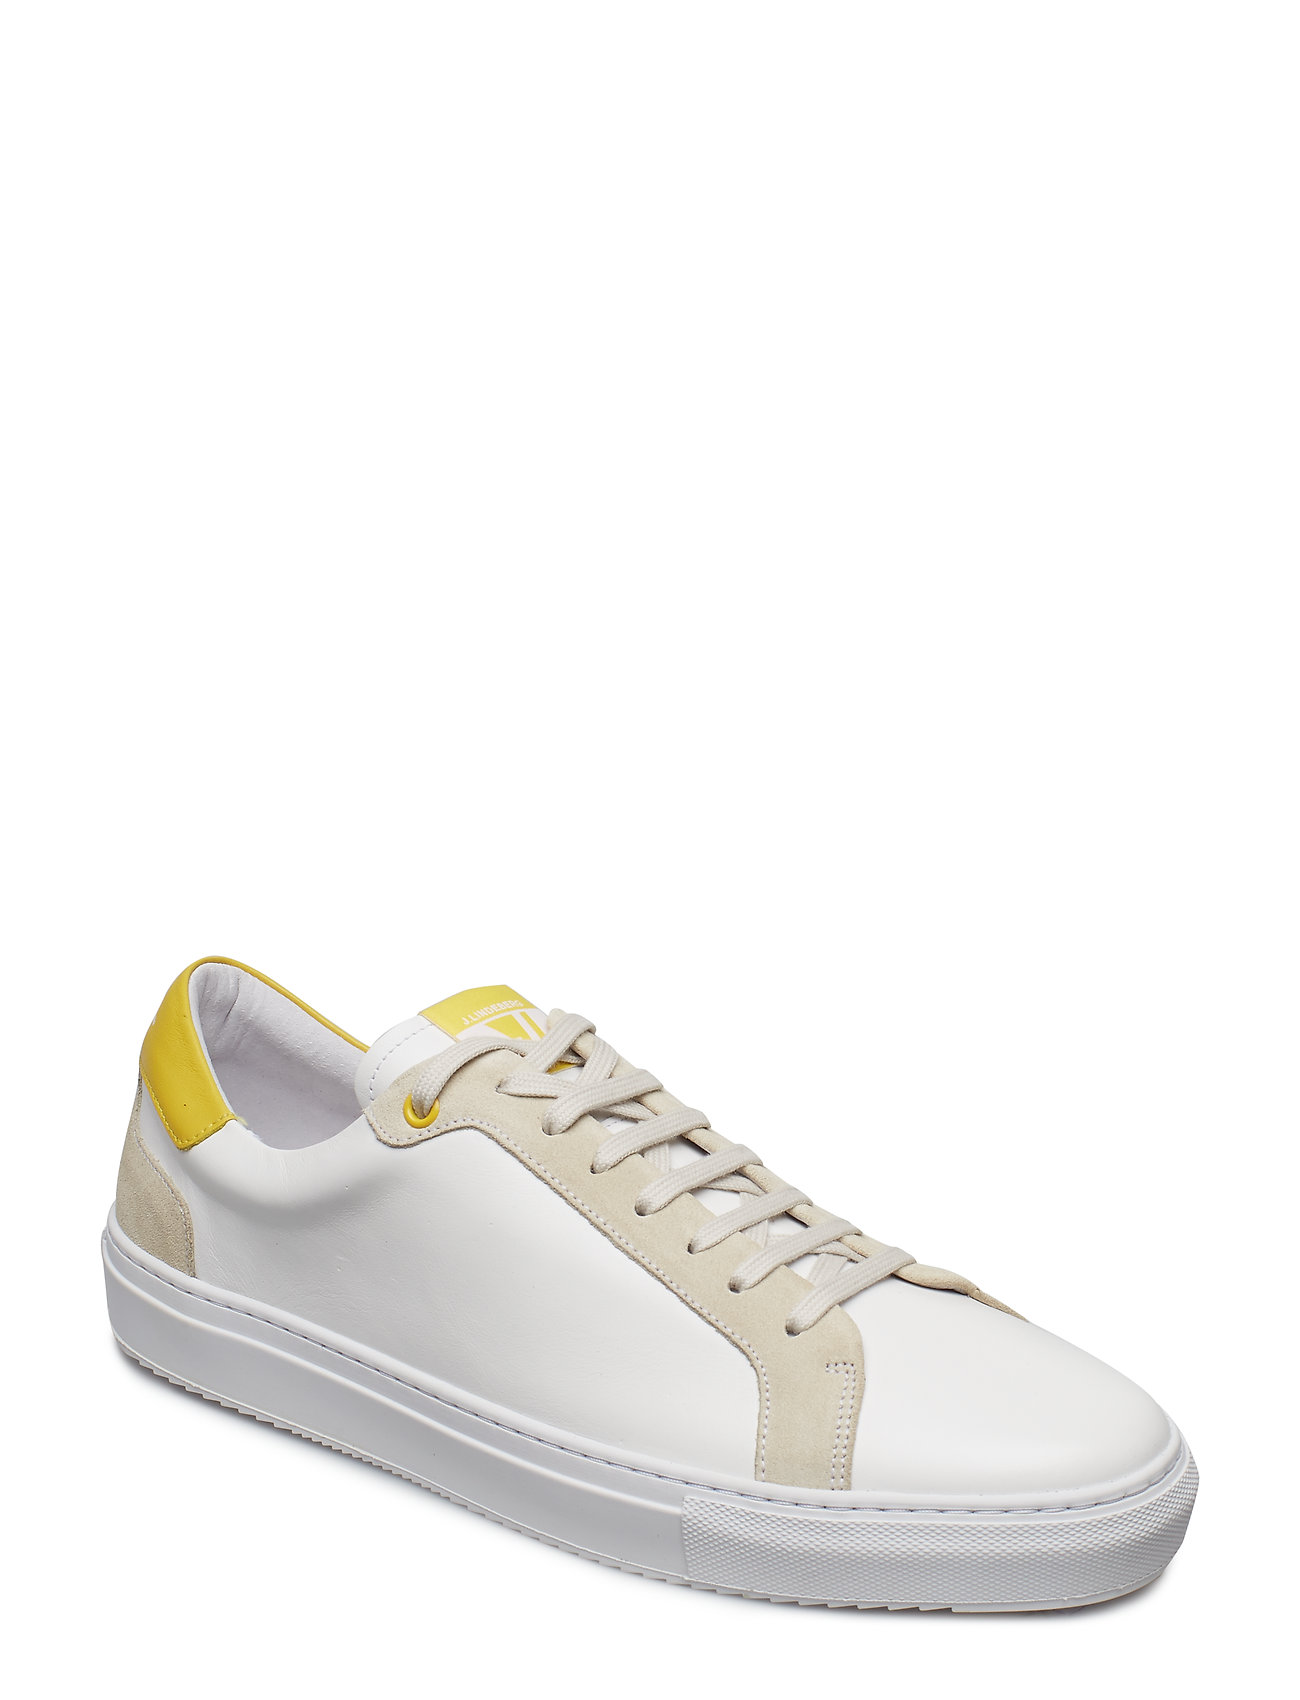 J. Lindeberg Sneaker Mix Calf - BUTTER YELLOW